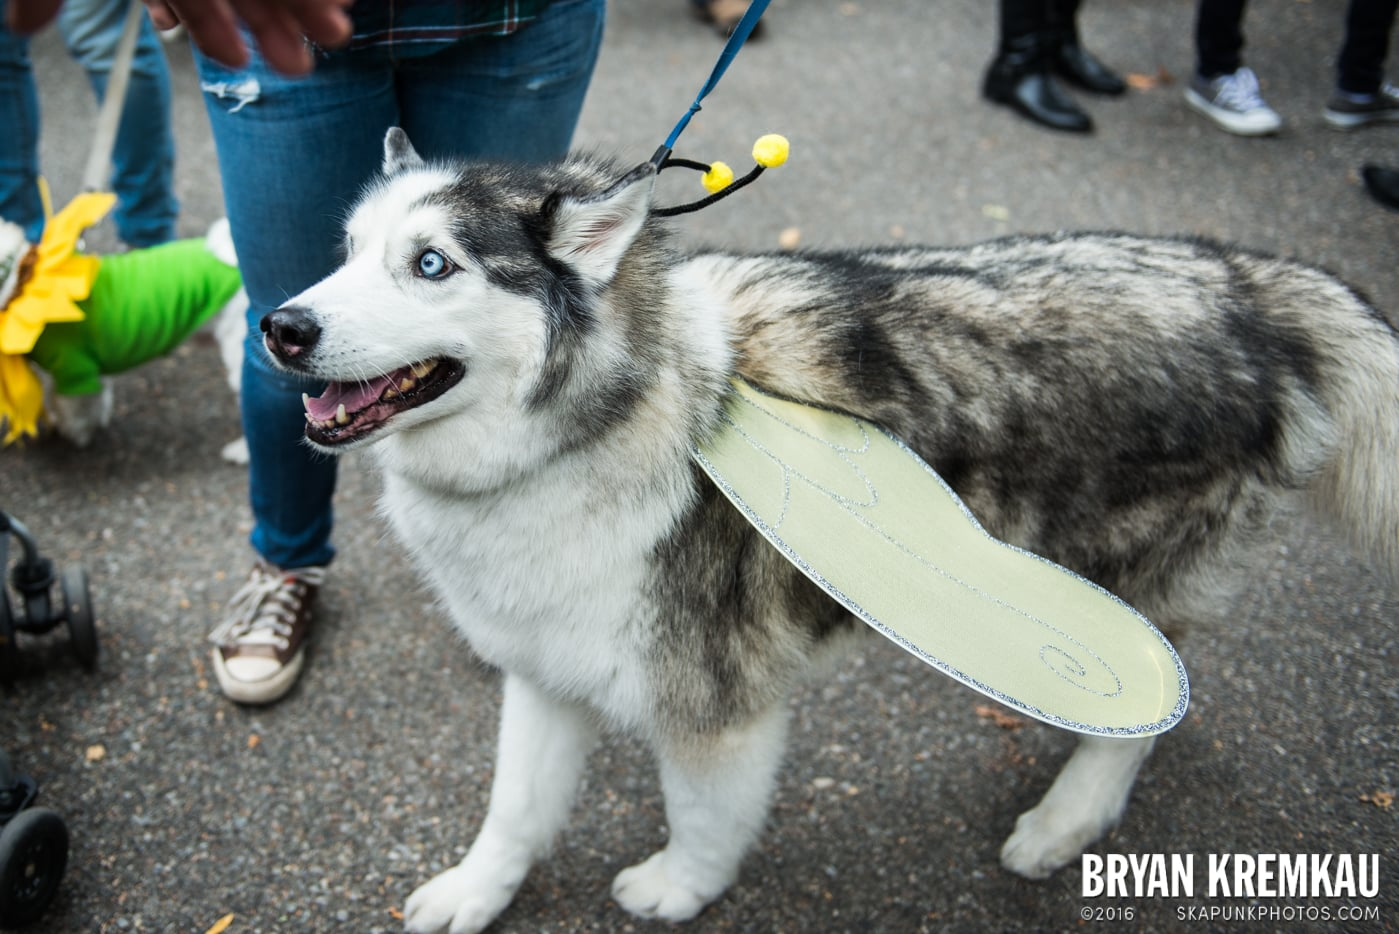 Tompkins Square Halloween Dog Parade 2015 @ Tompkins Square Park, NYC – 10.24.15 (5)